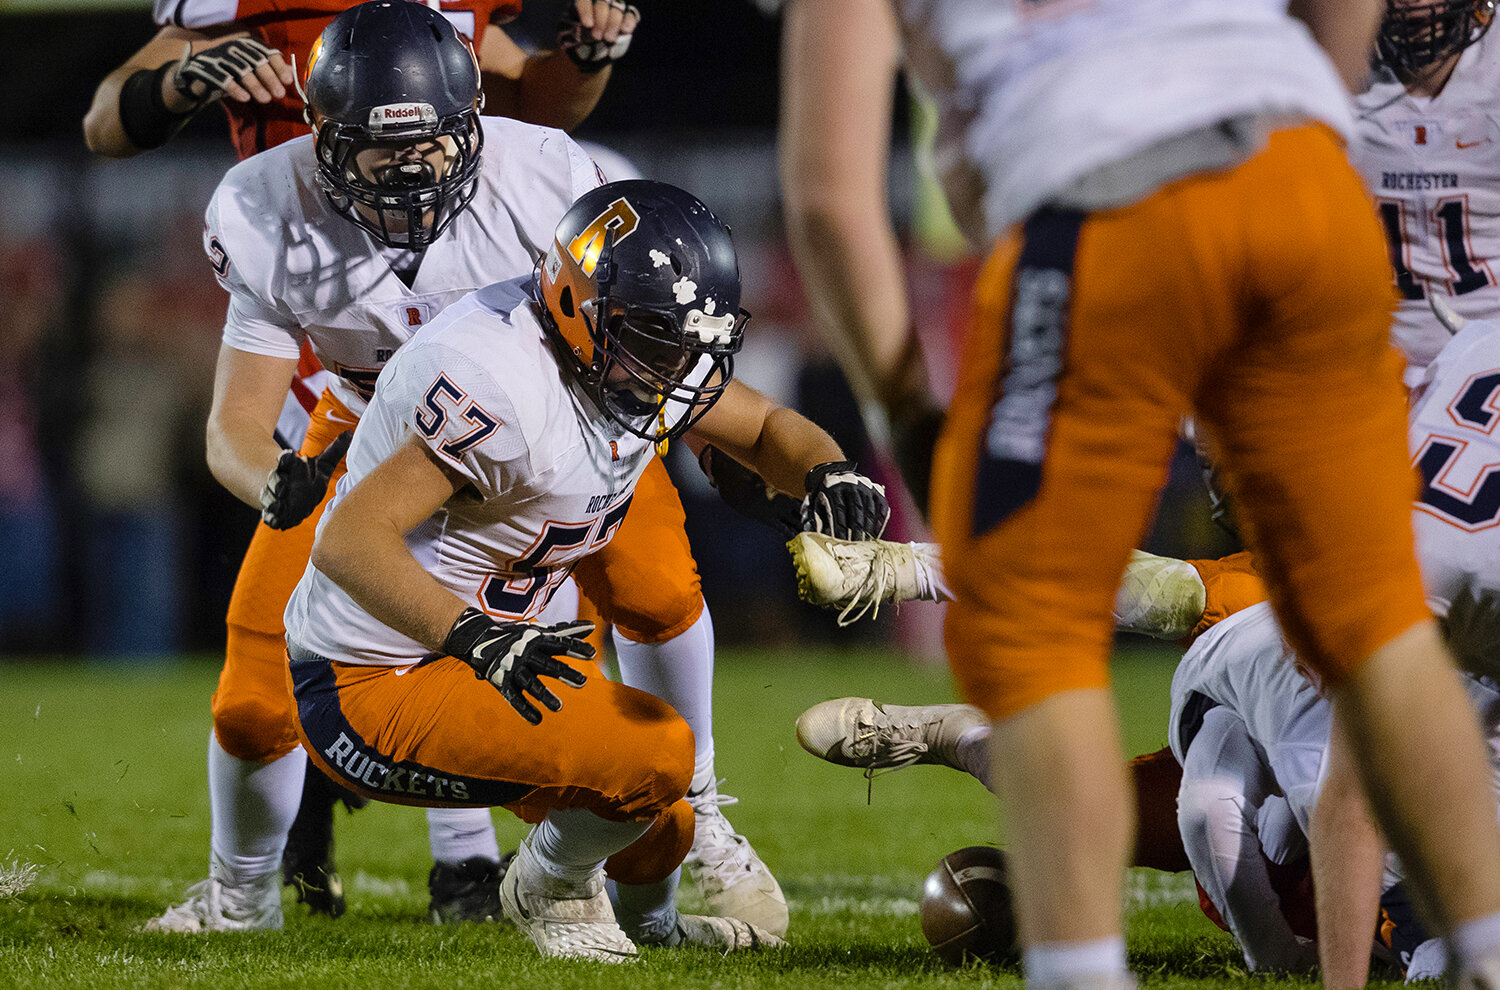 Rochester's Josh Scranton (57)  scrambles for a fumbled ball at Glenwood High School Friday, Oct. 25, 2019. [Ted Schurter/The State Journal-Register]